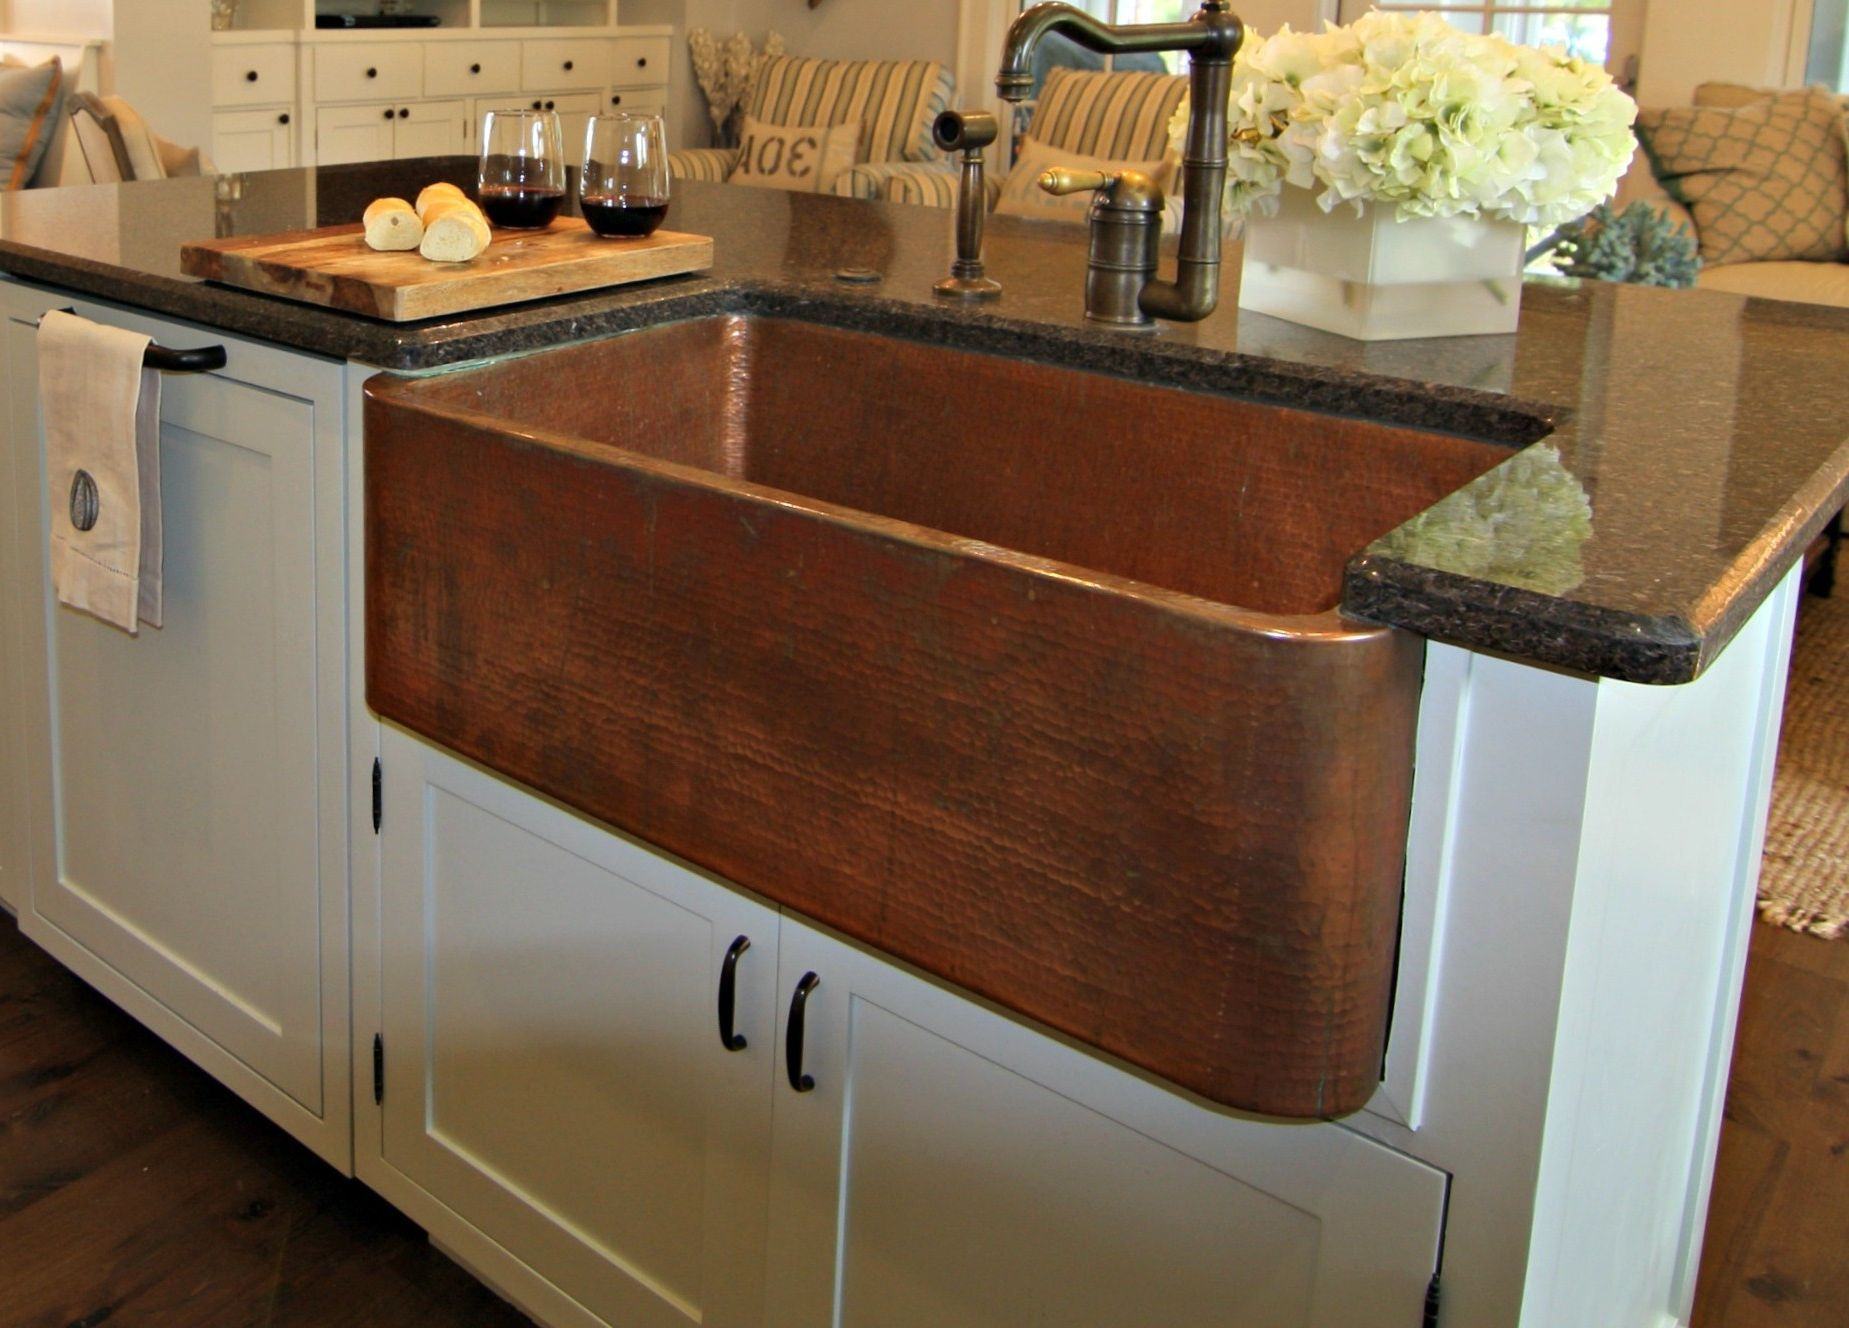 copper kitchen | Copper Kitchen Sink With Farmhouse Style For ...